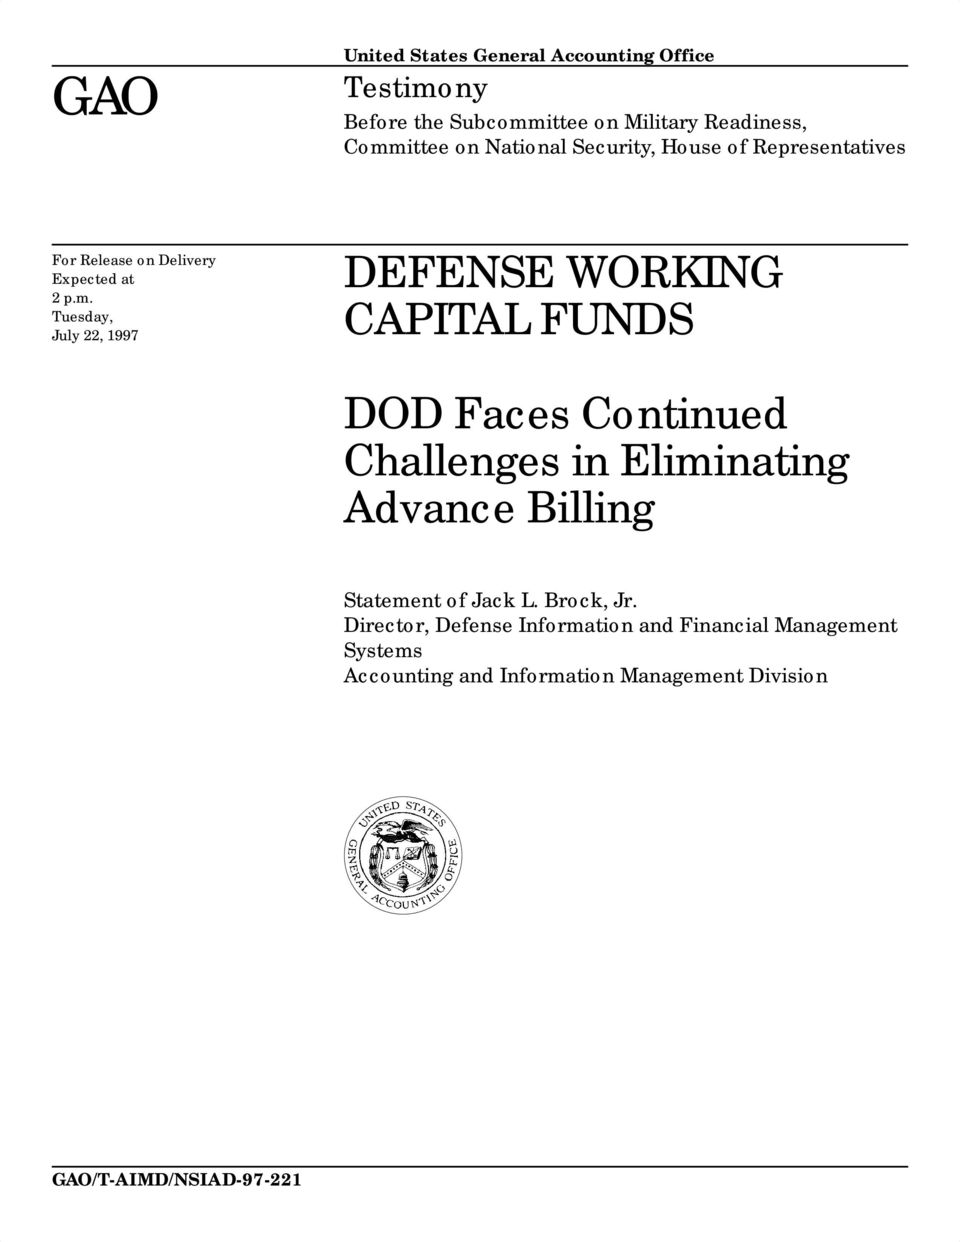 Tuesday, July 22, 1997 DEFENSE WORKING CAPITAL FUNDS DOD Faces Continued Challenges in Eliminating Advance Billing